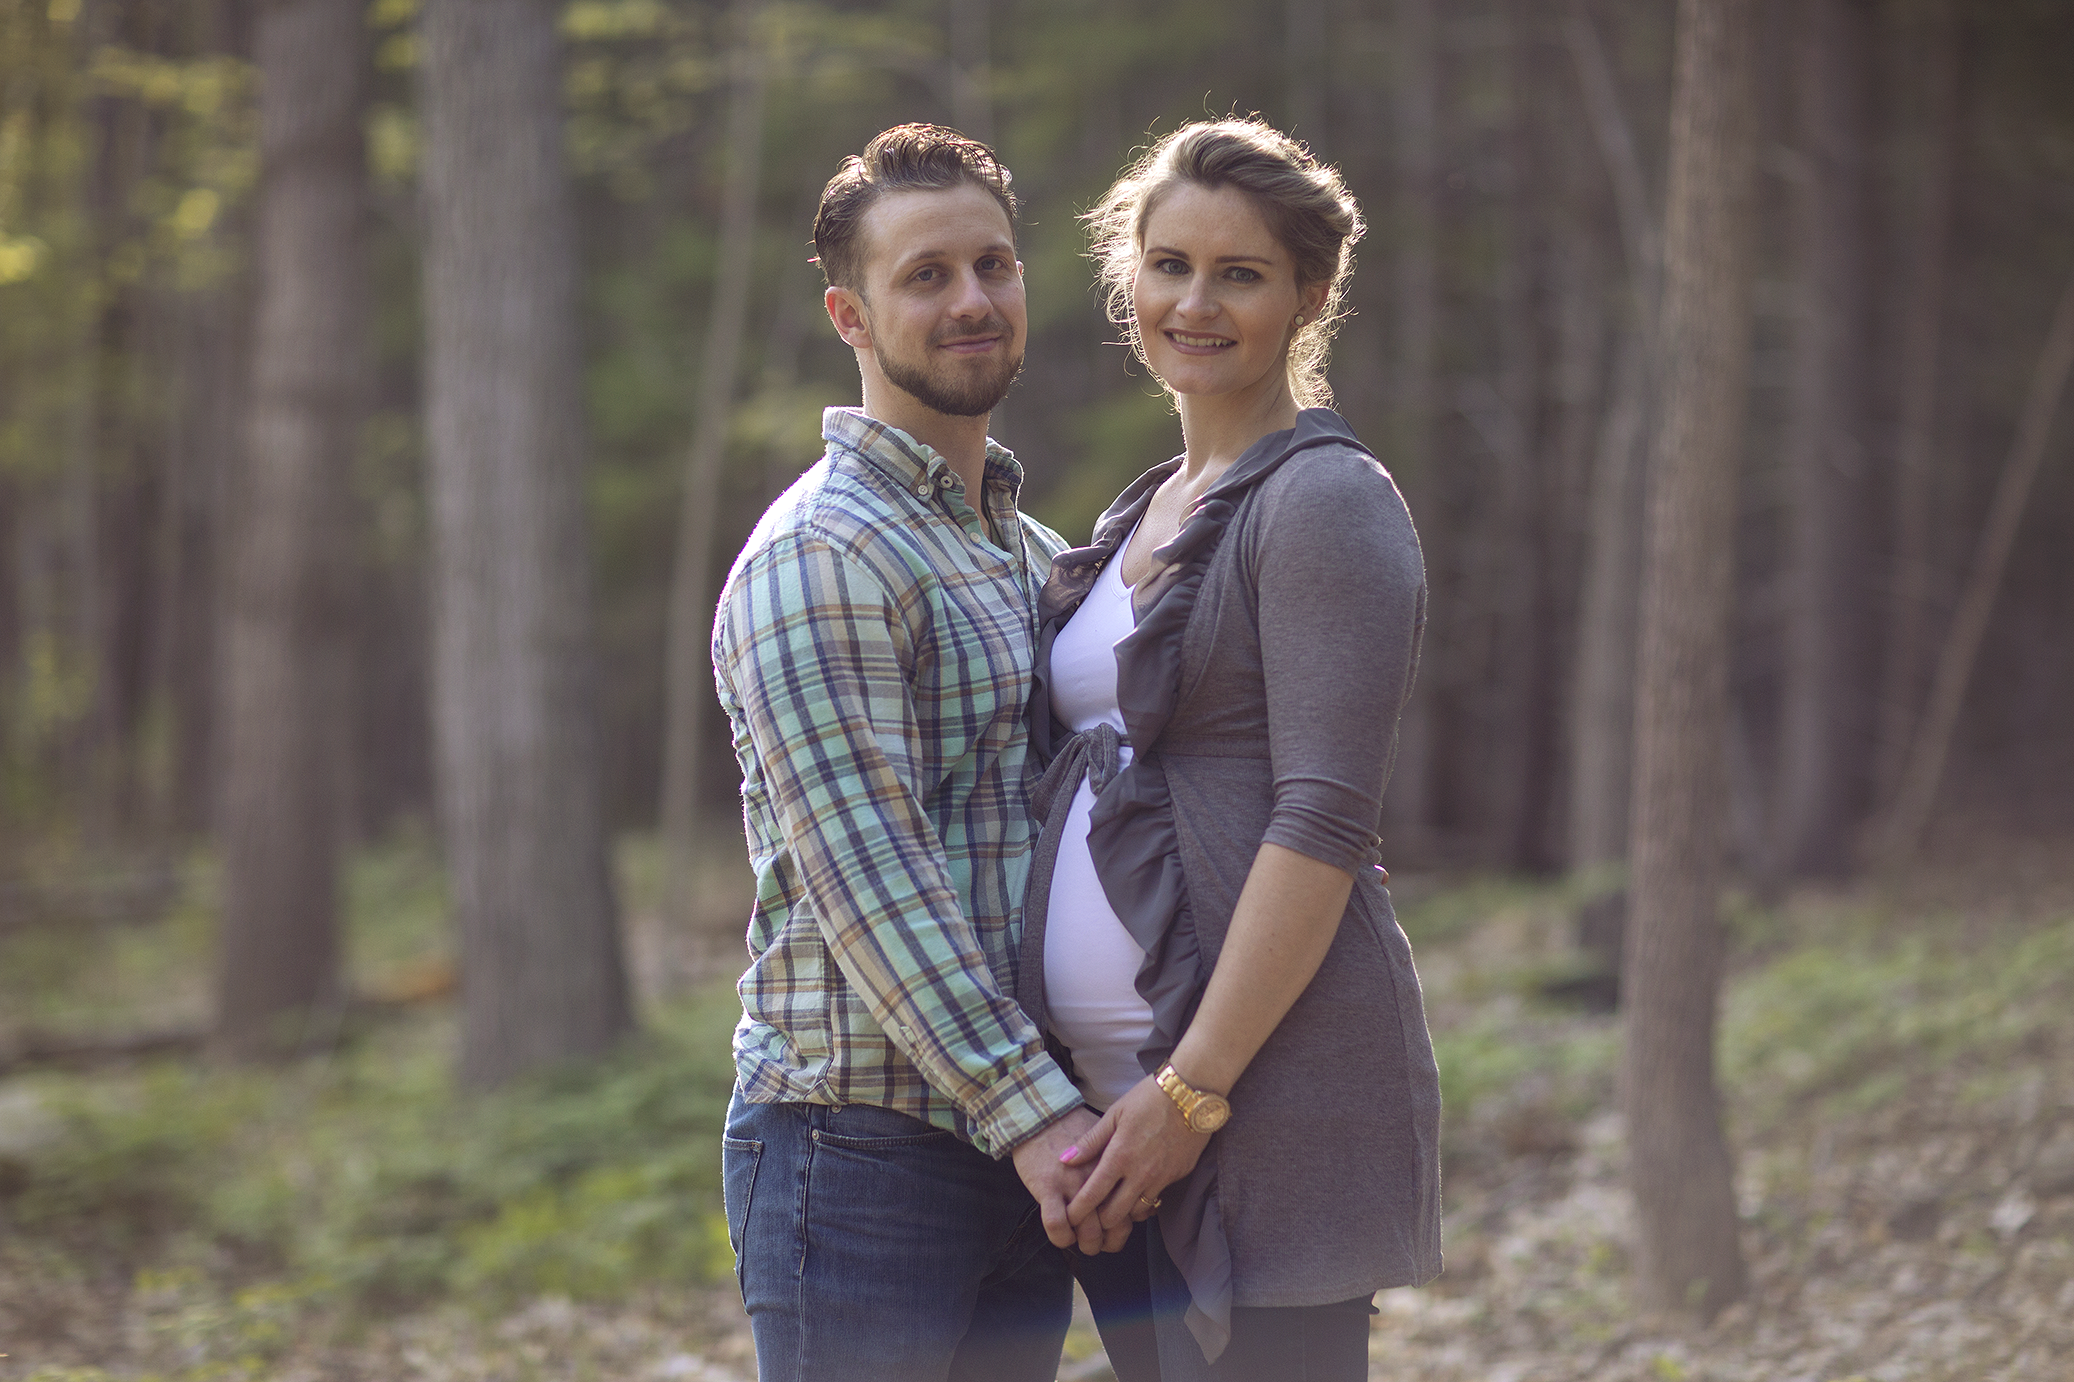 Forest_Maternity_Session_0011